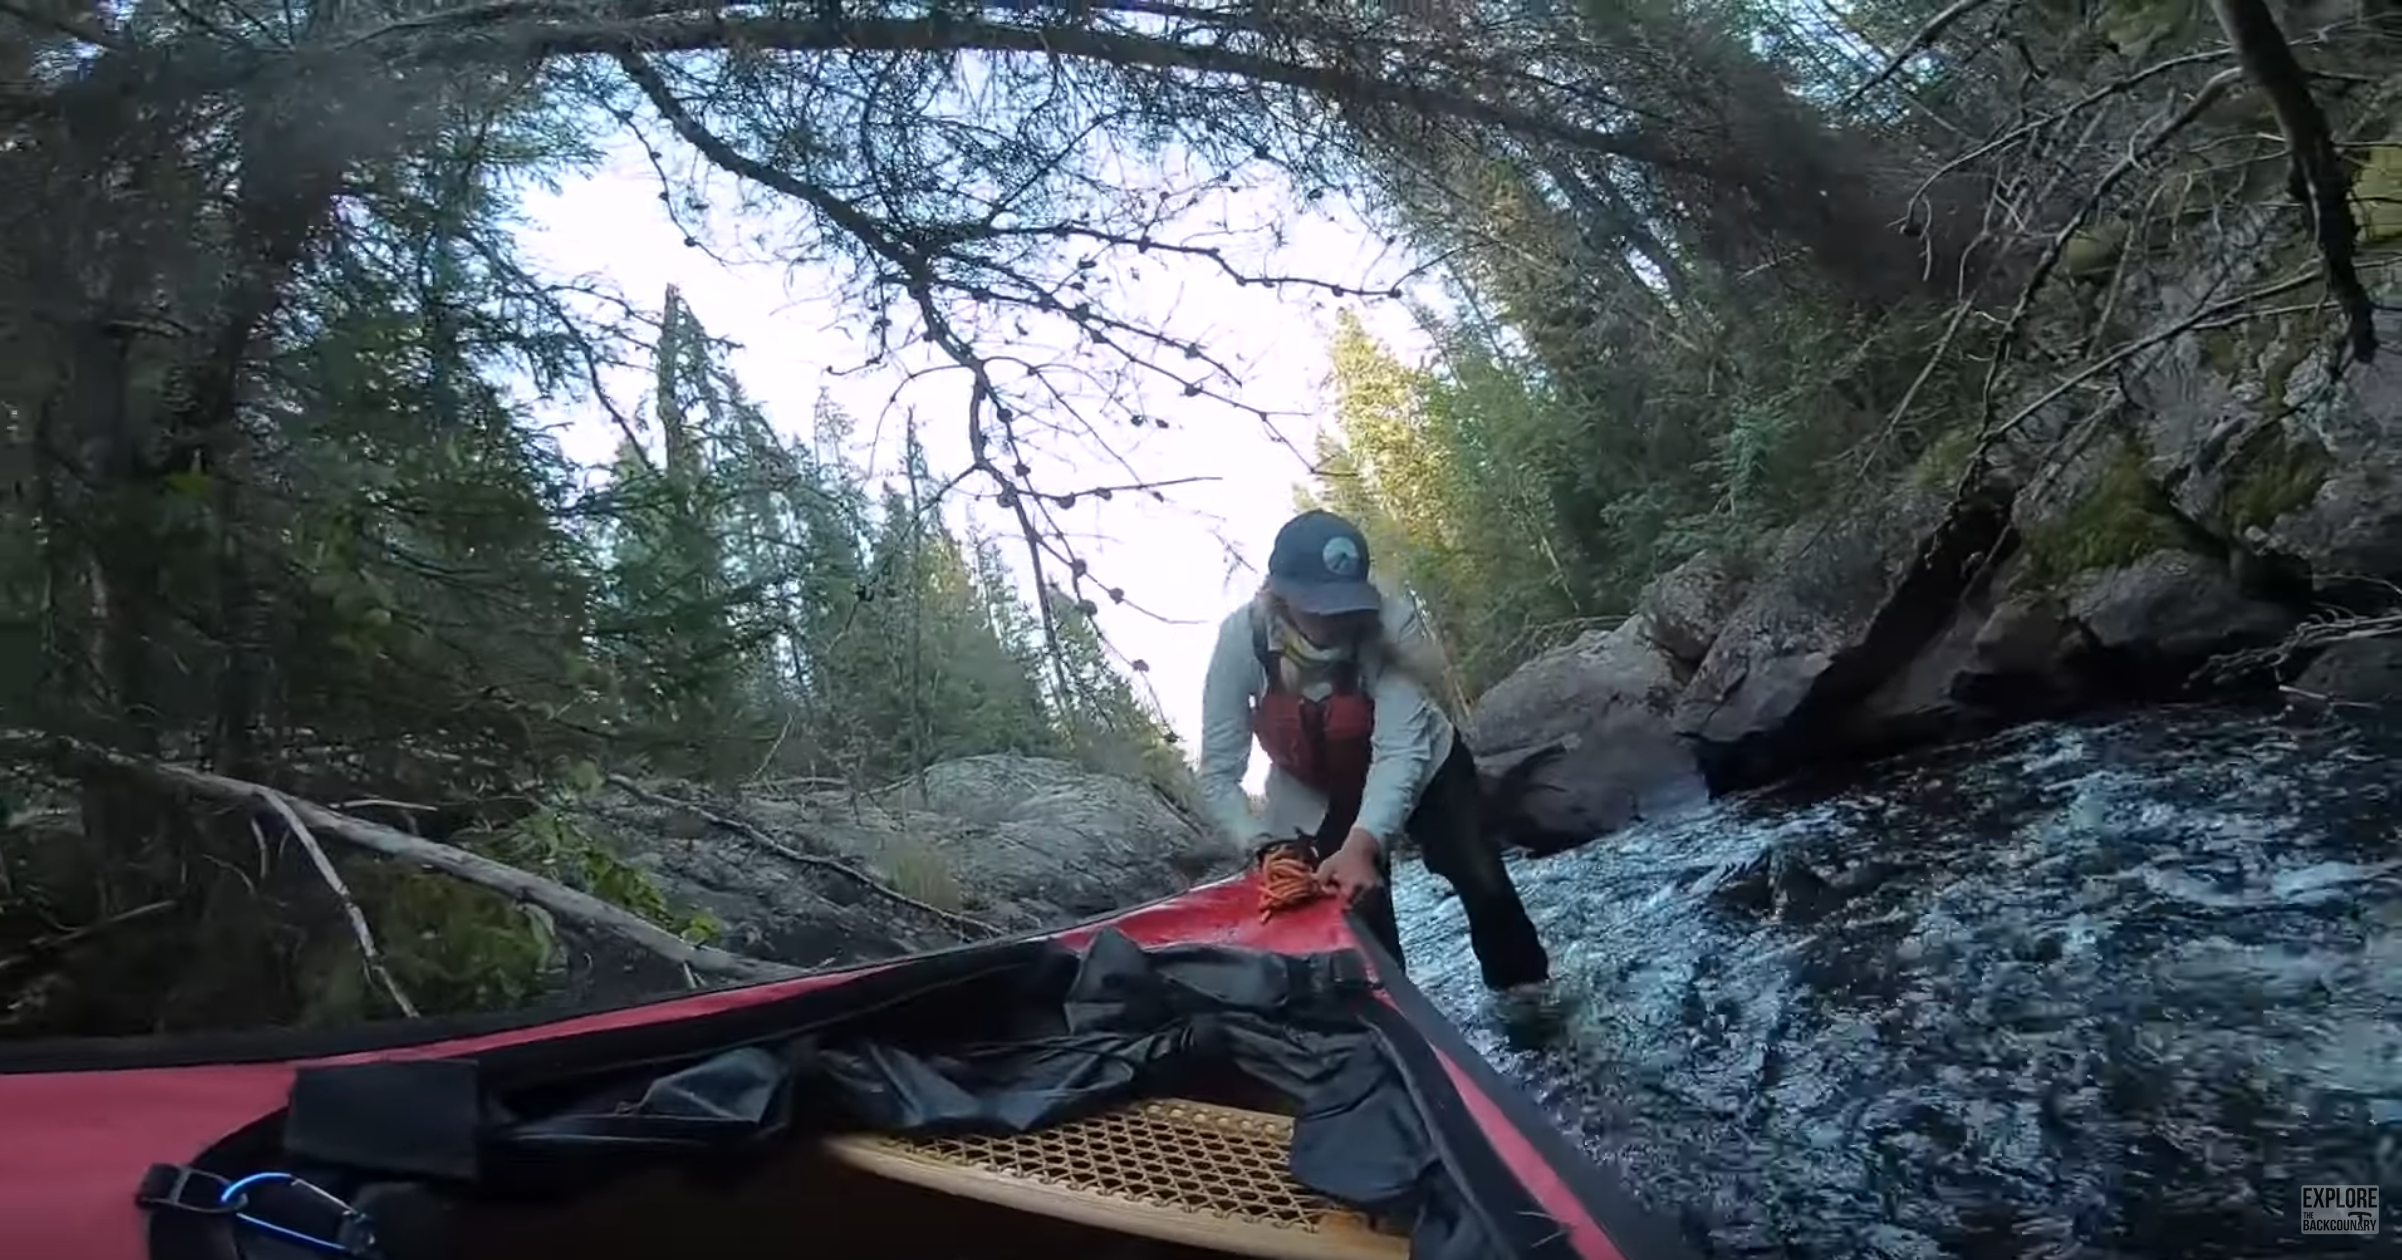 Leah pulls a canoe through a shallow river.  Screenshot from Explore the Backcountry by Brad and Wayne Jennings and Leah Schmidt.  Canadian outdoor adventure YouTubers